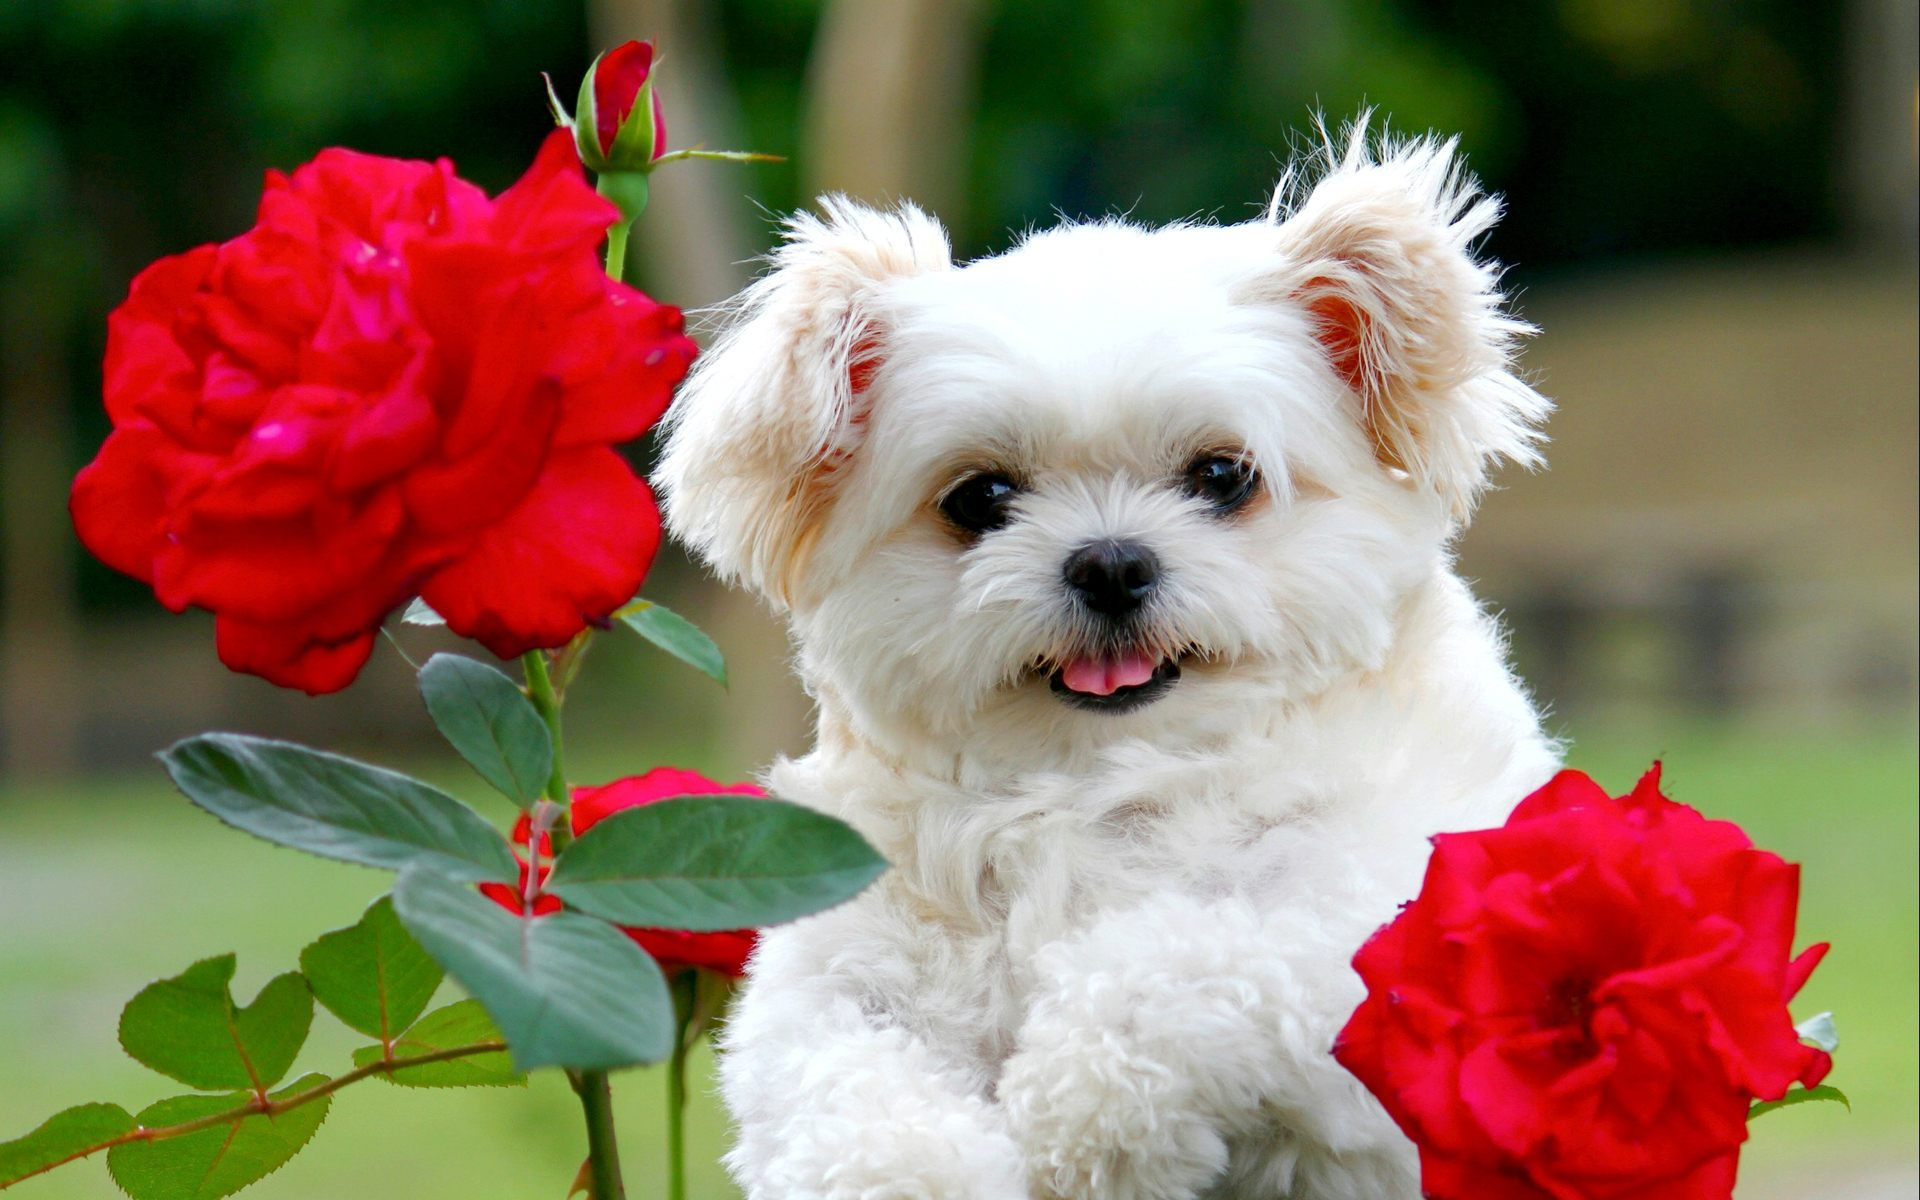 Cute puppies wallpapers - SF Wallpaper